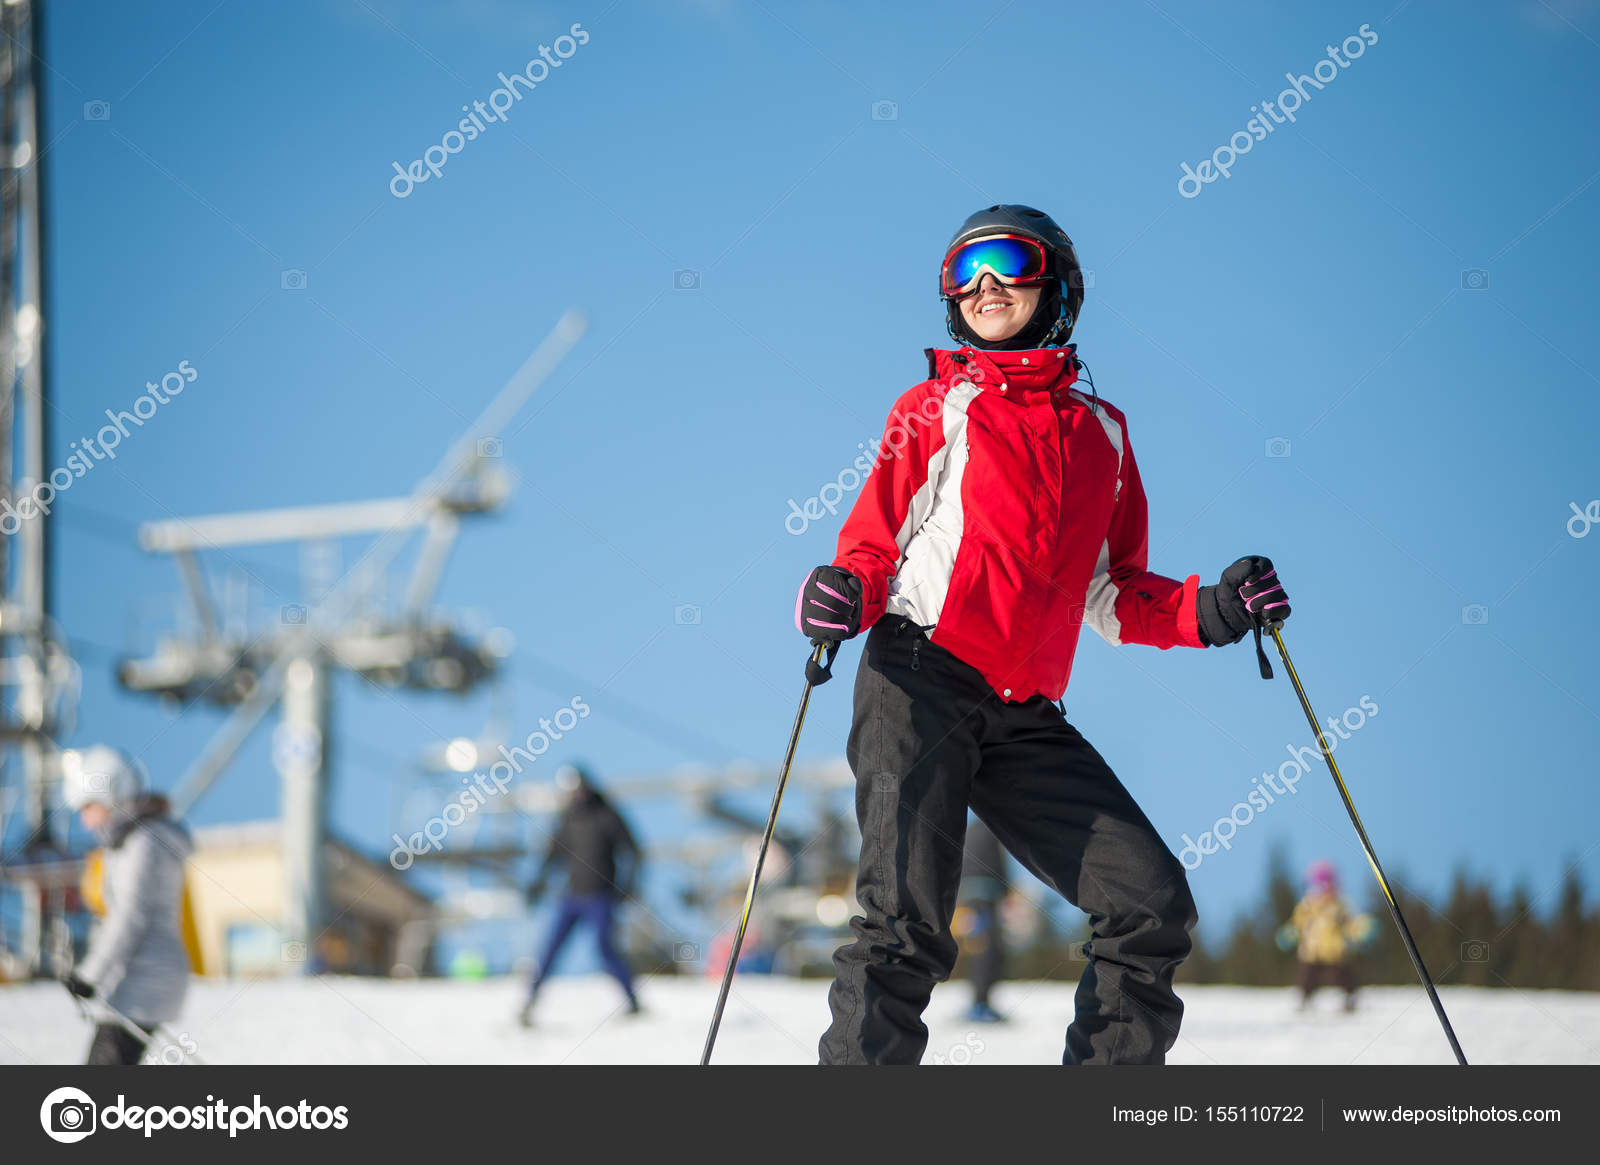 ca66d4dd8f9 Woman skier with ski at winer resort in sunny day — Stock Photo ...